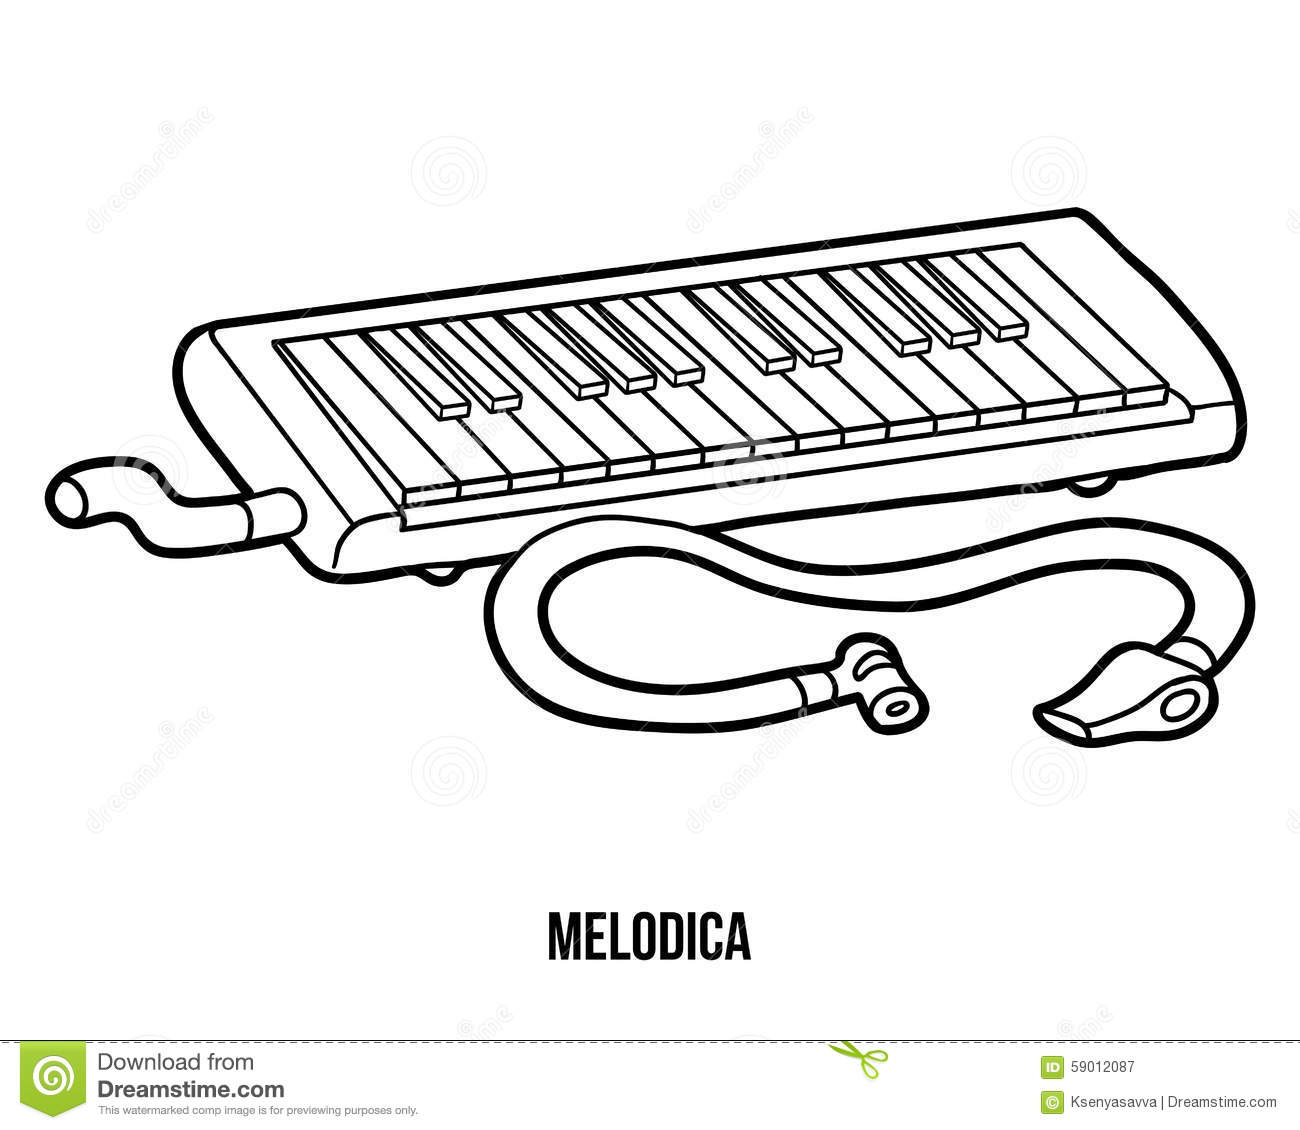 A Set Of Musical Melodica On White Background Vector